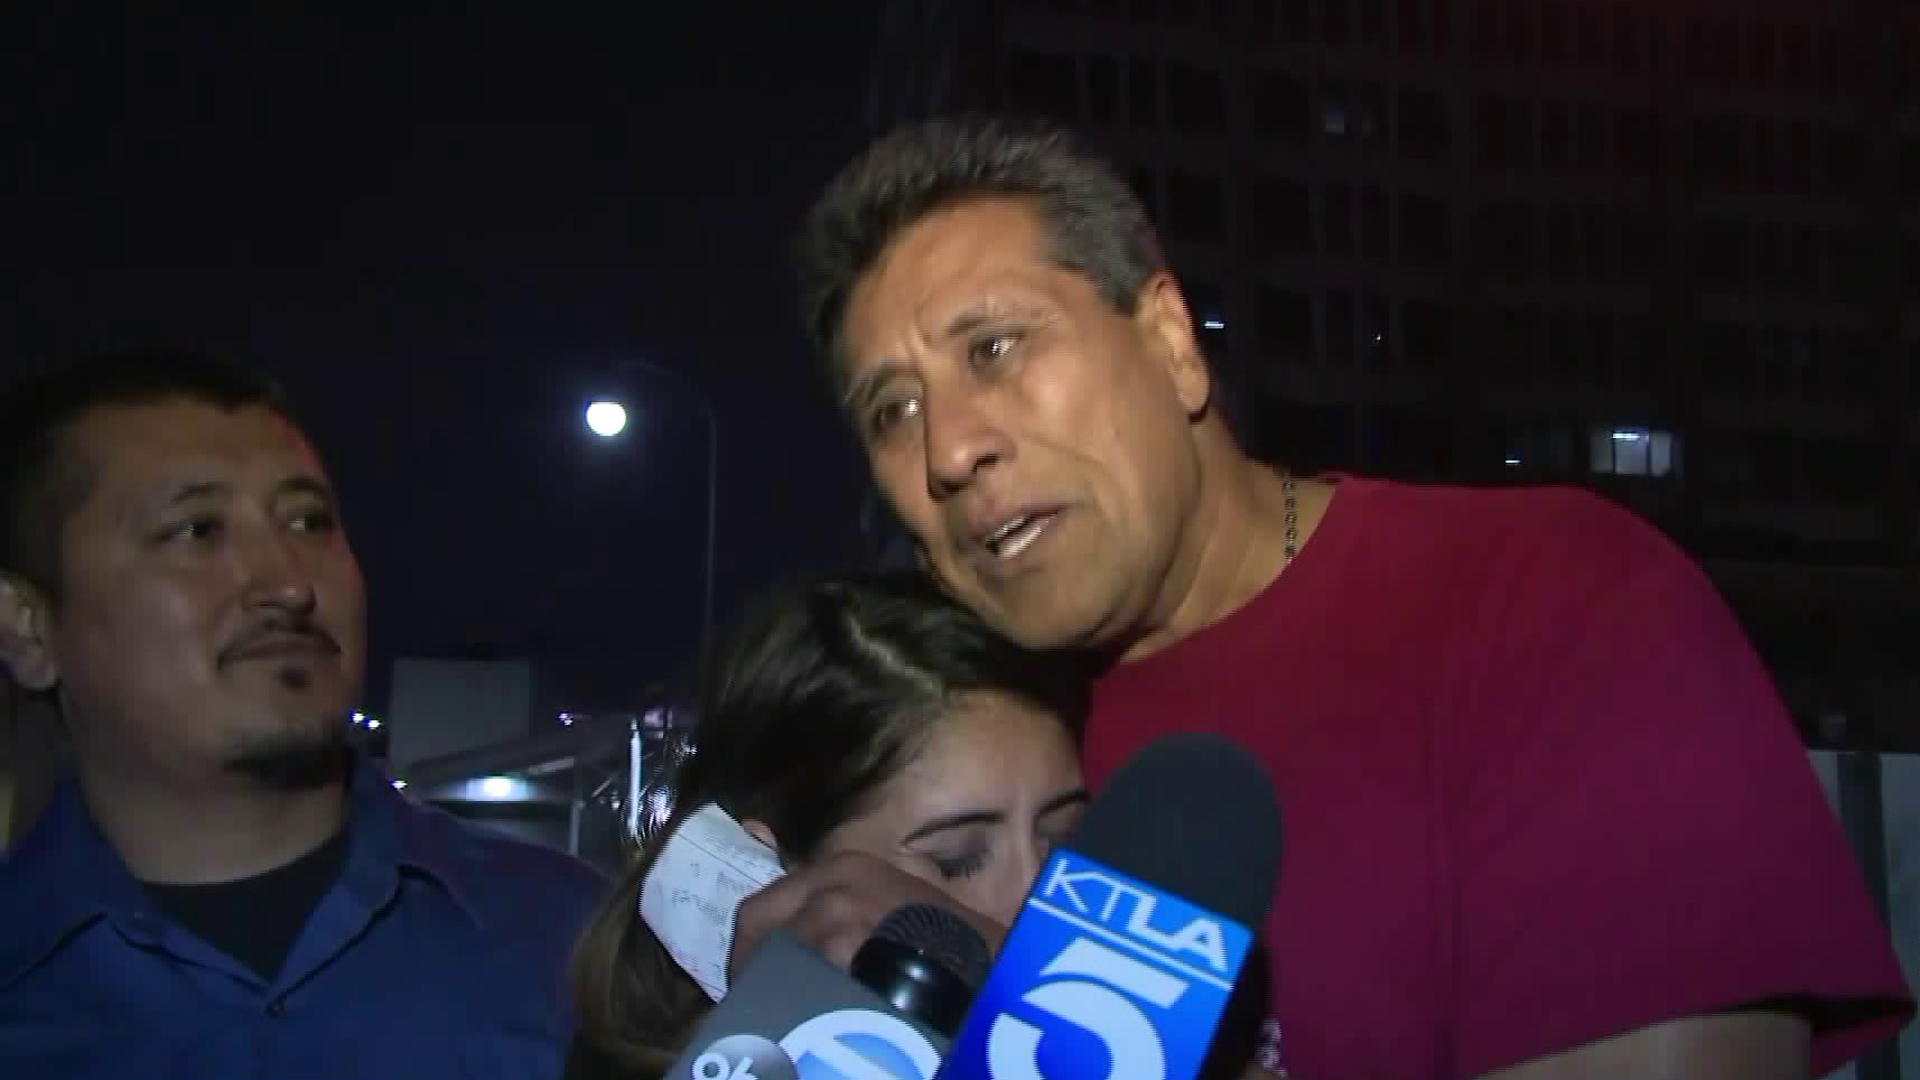 Jose Luis Garcia is greeted by family after being released from ICE custody on June 29, 2018. (Credit: KTLA)